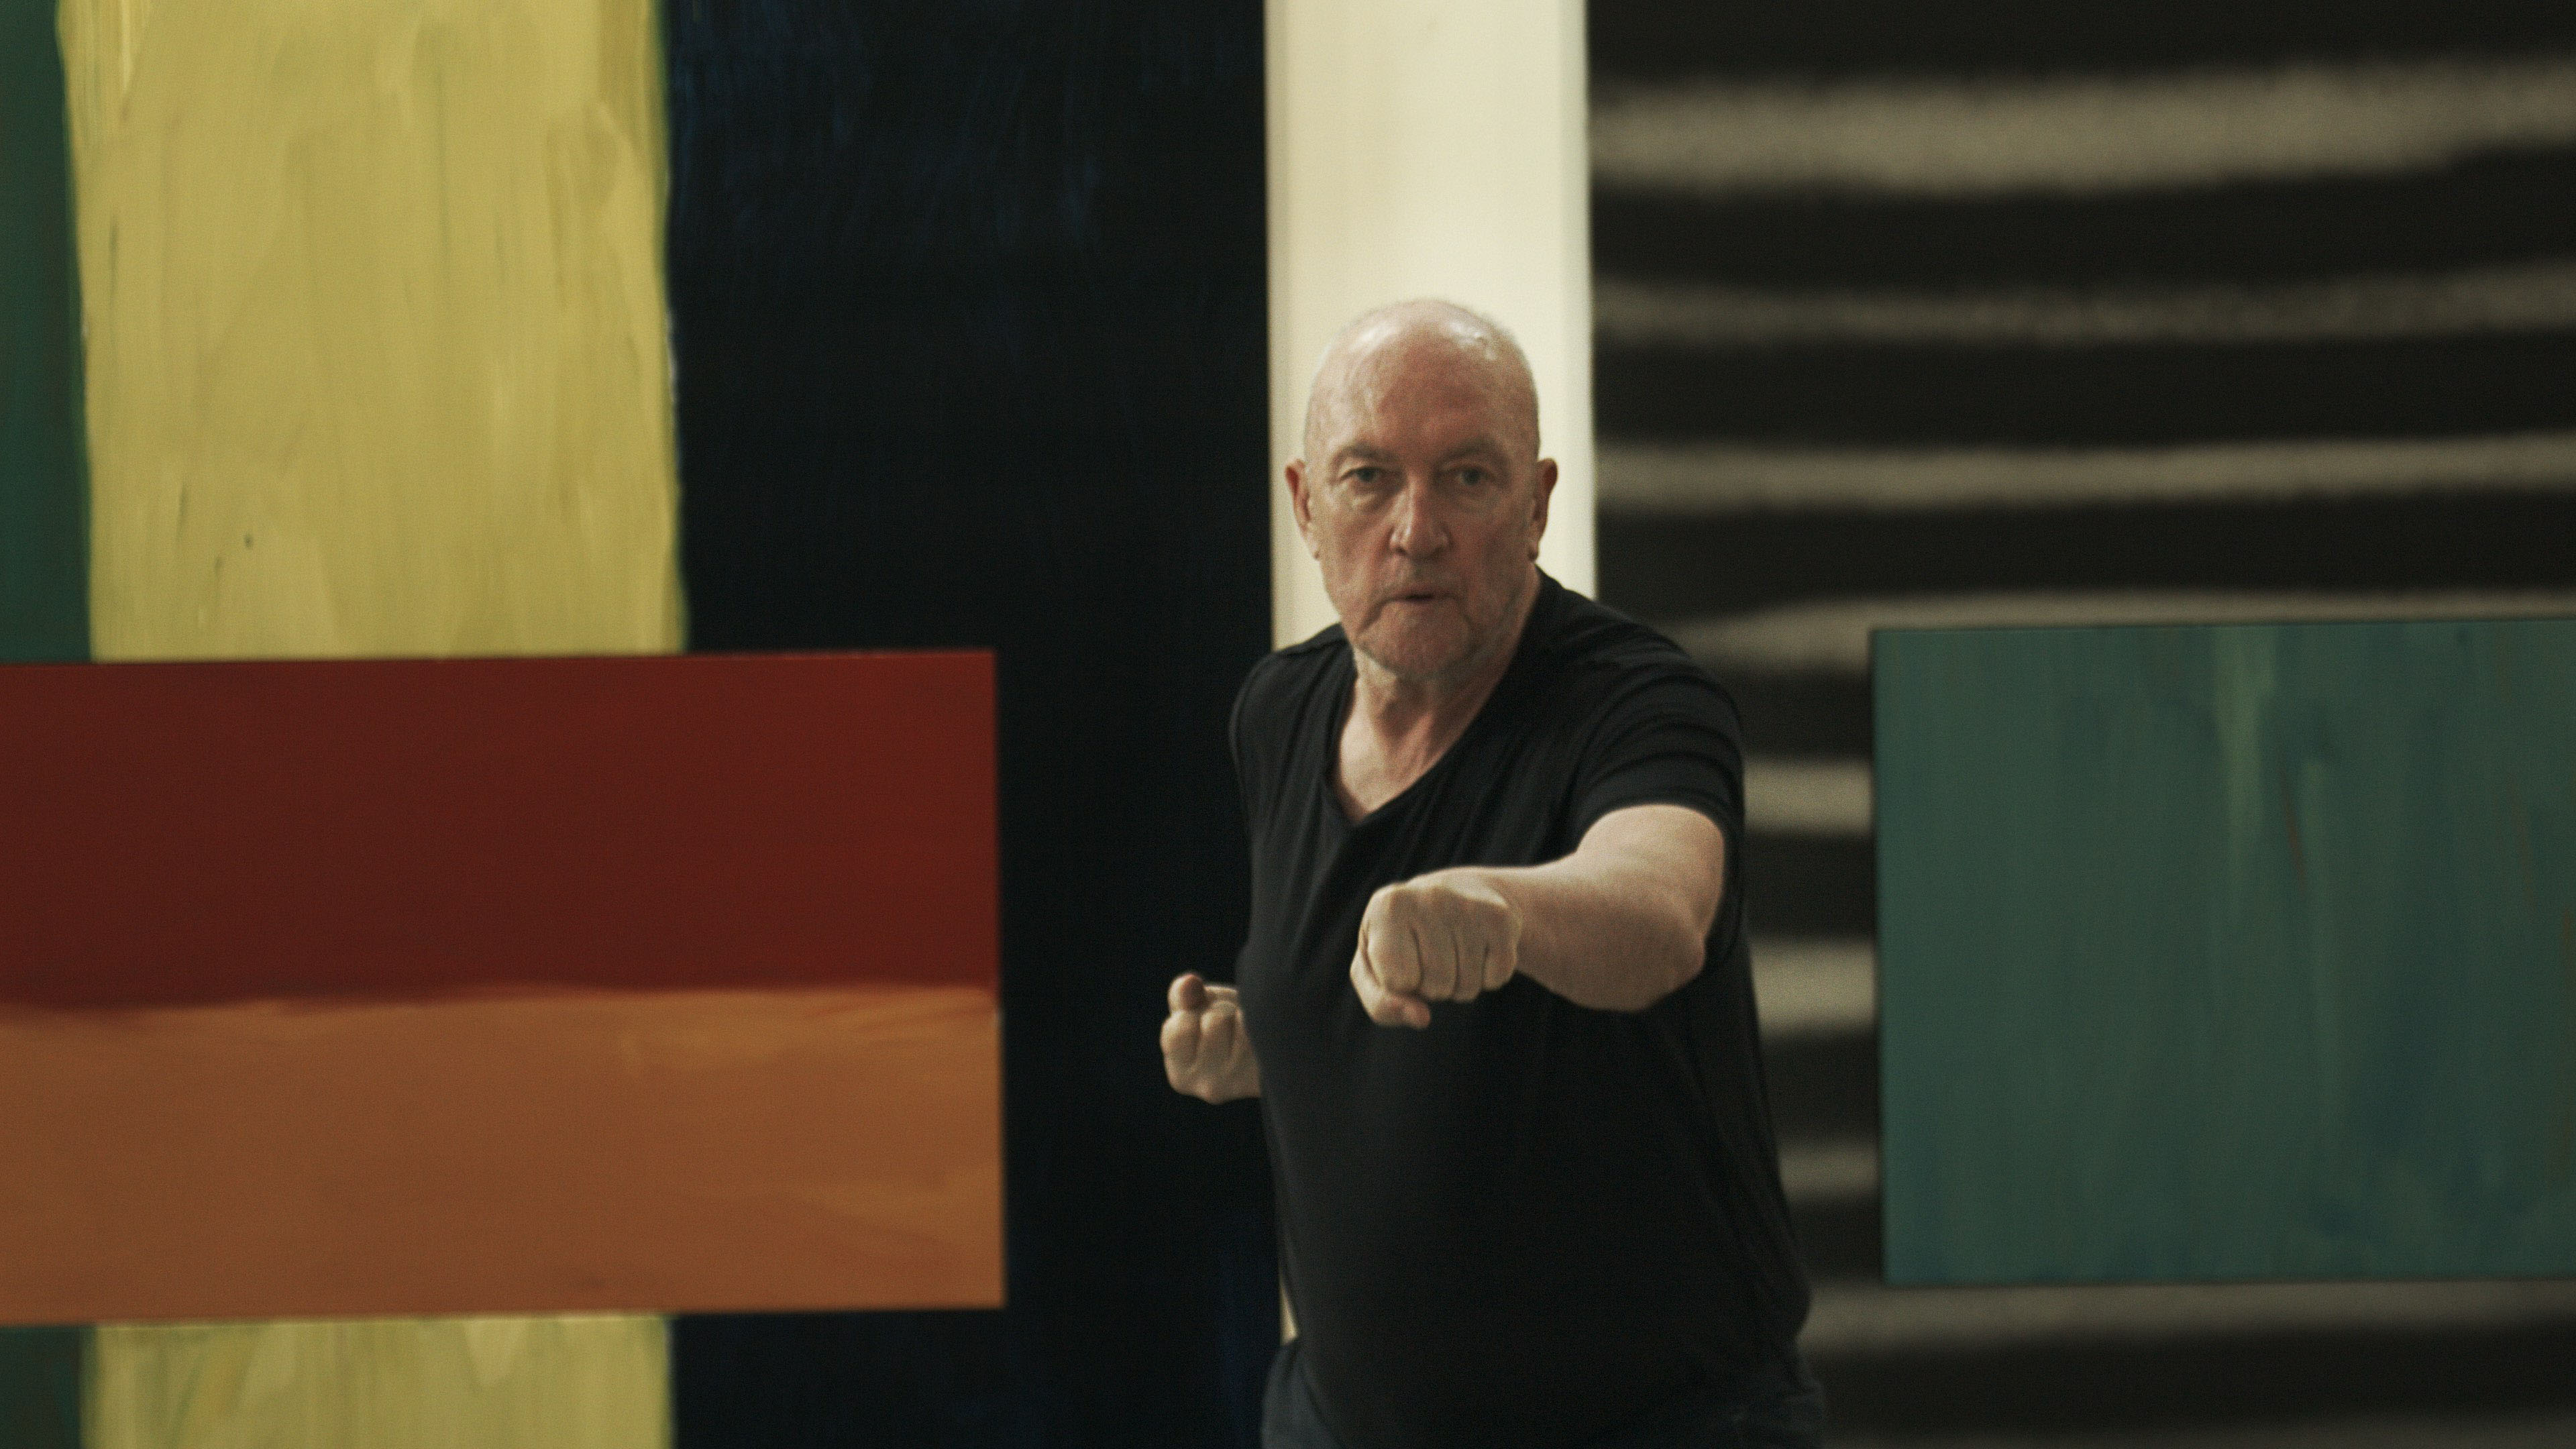 UNSTOPPABLE: SEAN SCULLY AND THE ART OF EVERYTHING